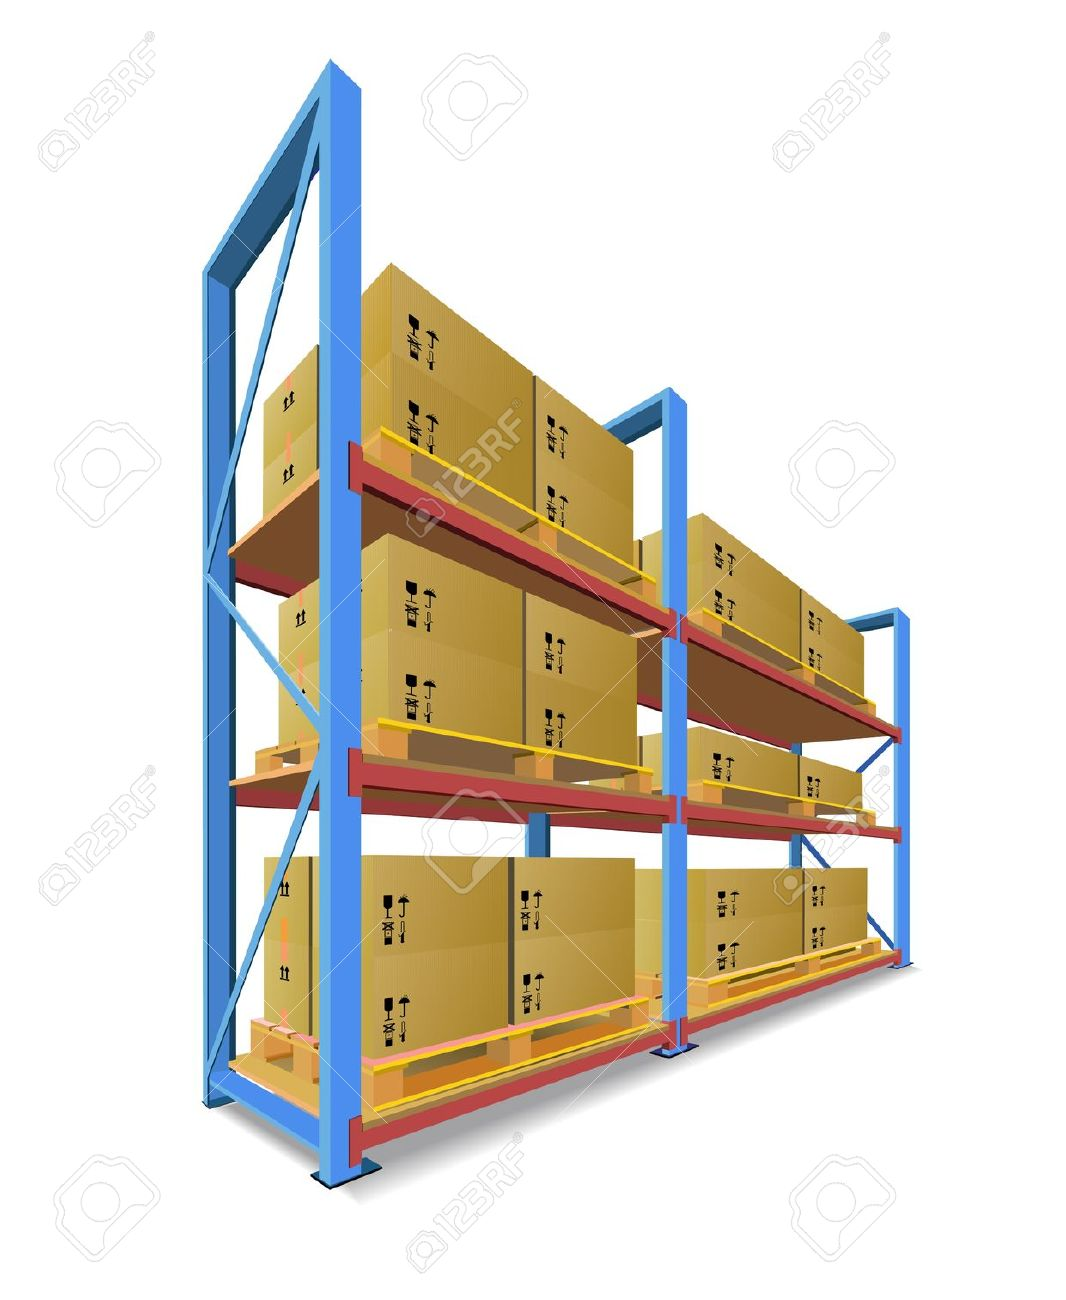 Warehouse clipart logo. Shelf